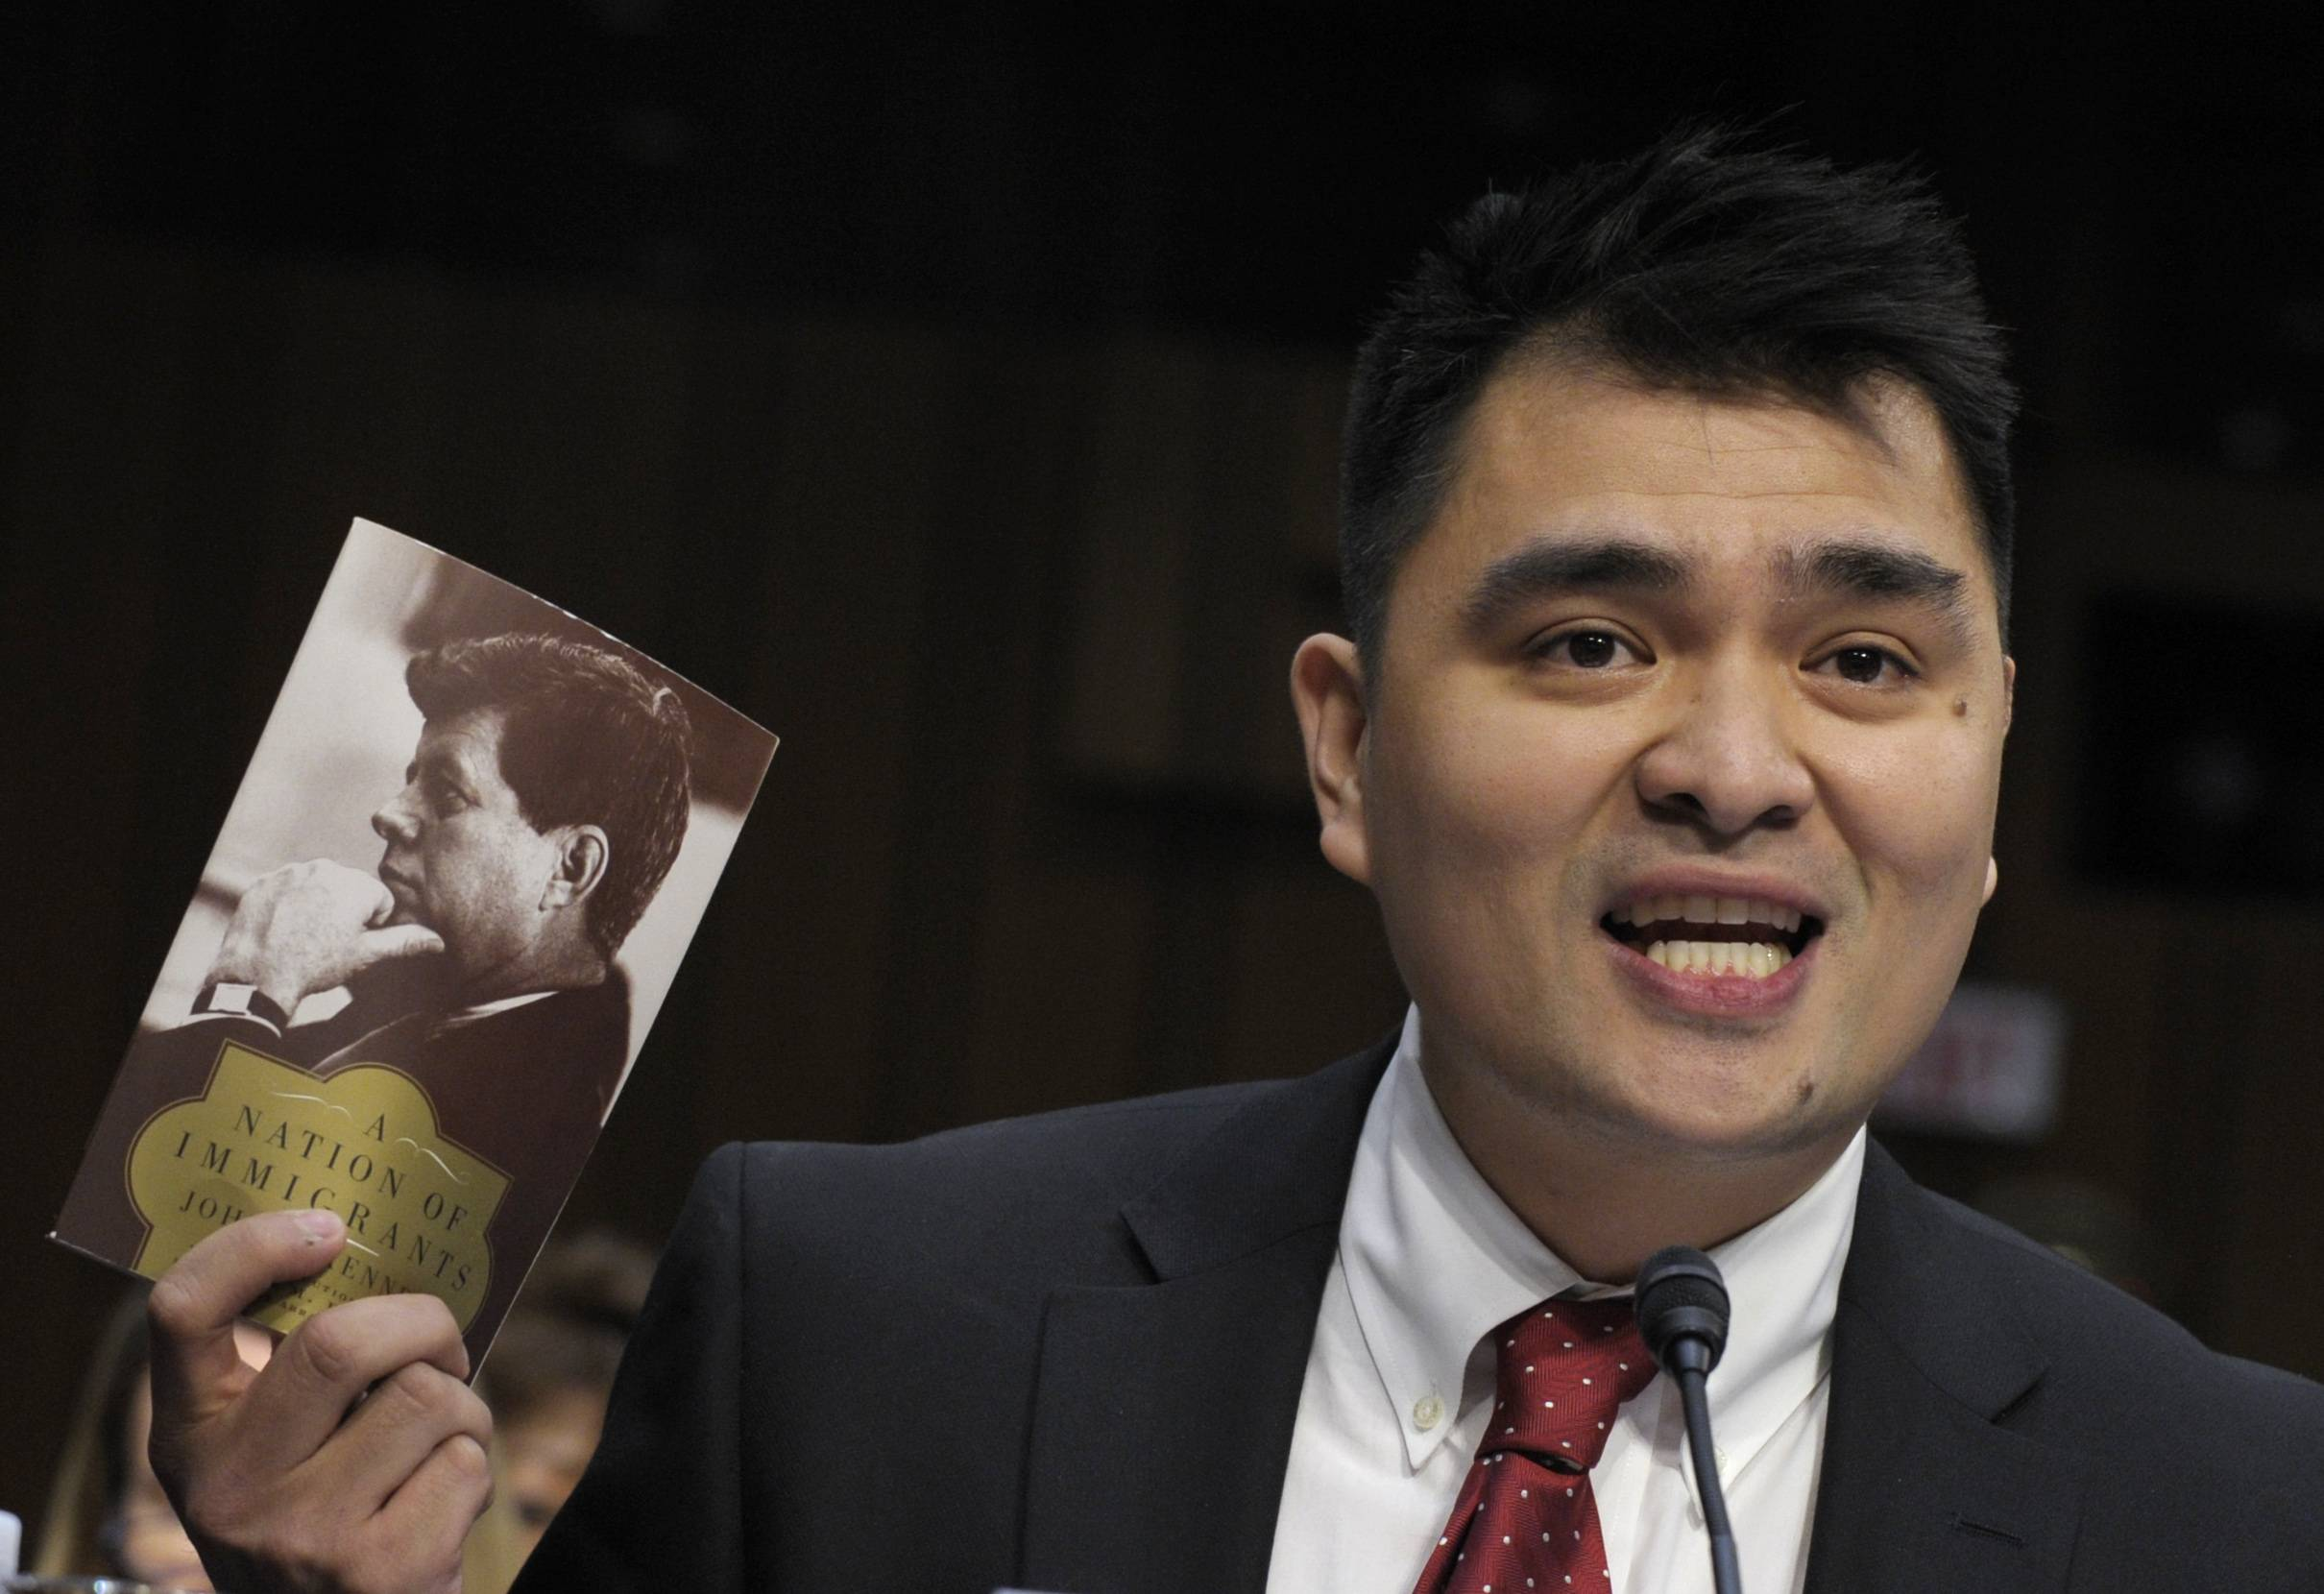 Pulitzer Prize-winning journalist, immigration rights activist and self-declared undocumented immigrant Jose Antonio Vargas was released after being detained Tuesday by U.S. Border Patrol agents at a South Texas airport.